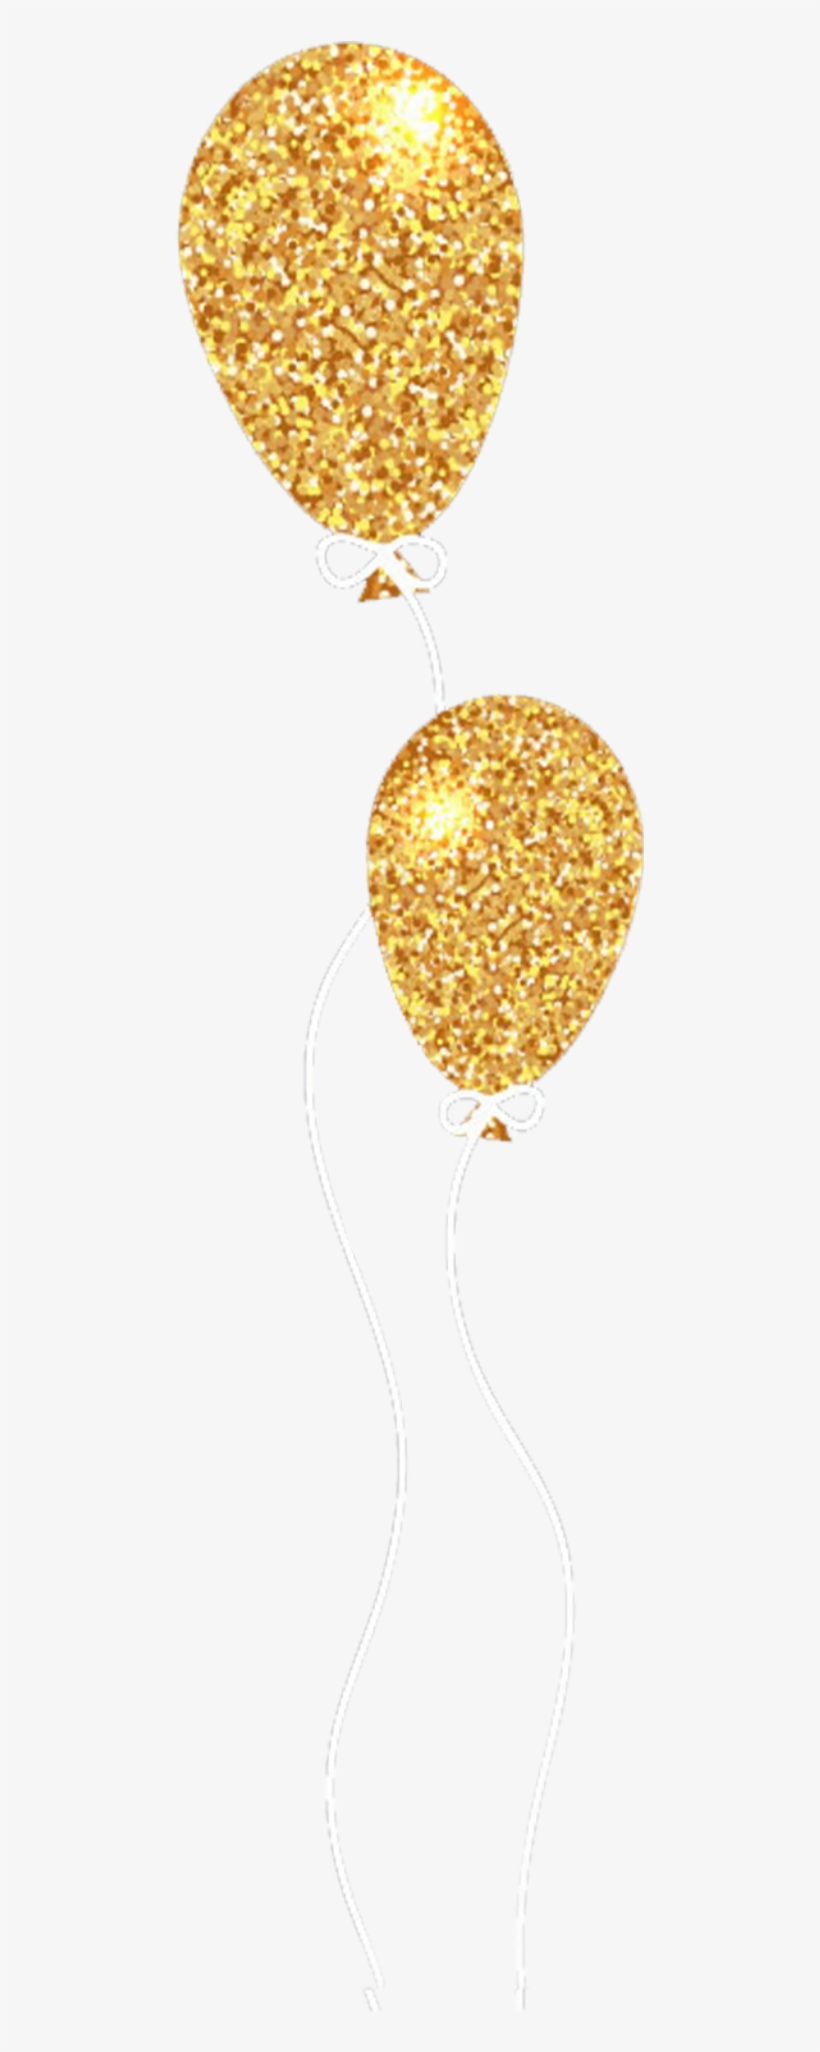 Report Abuse - Gold Glitter Balloon Png, transparent png #141915